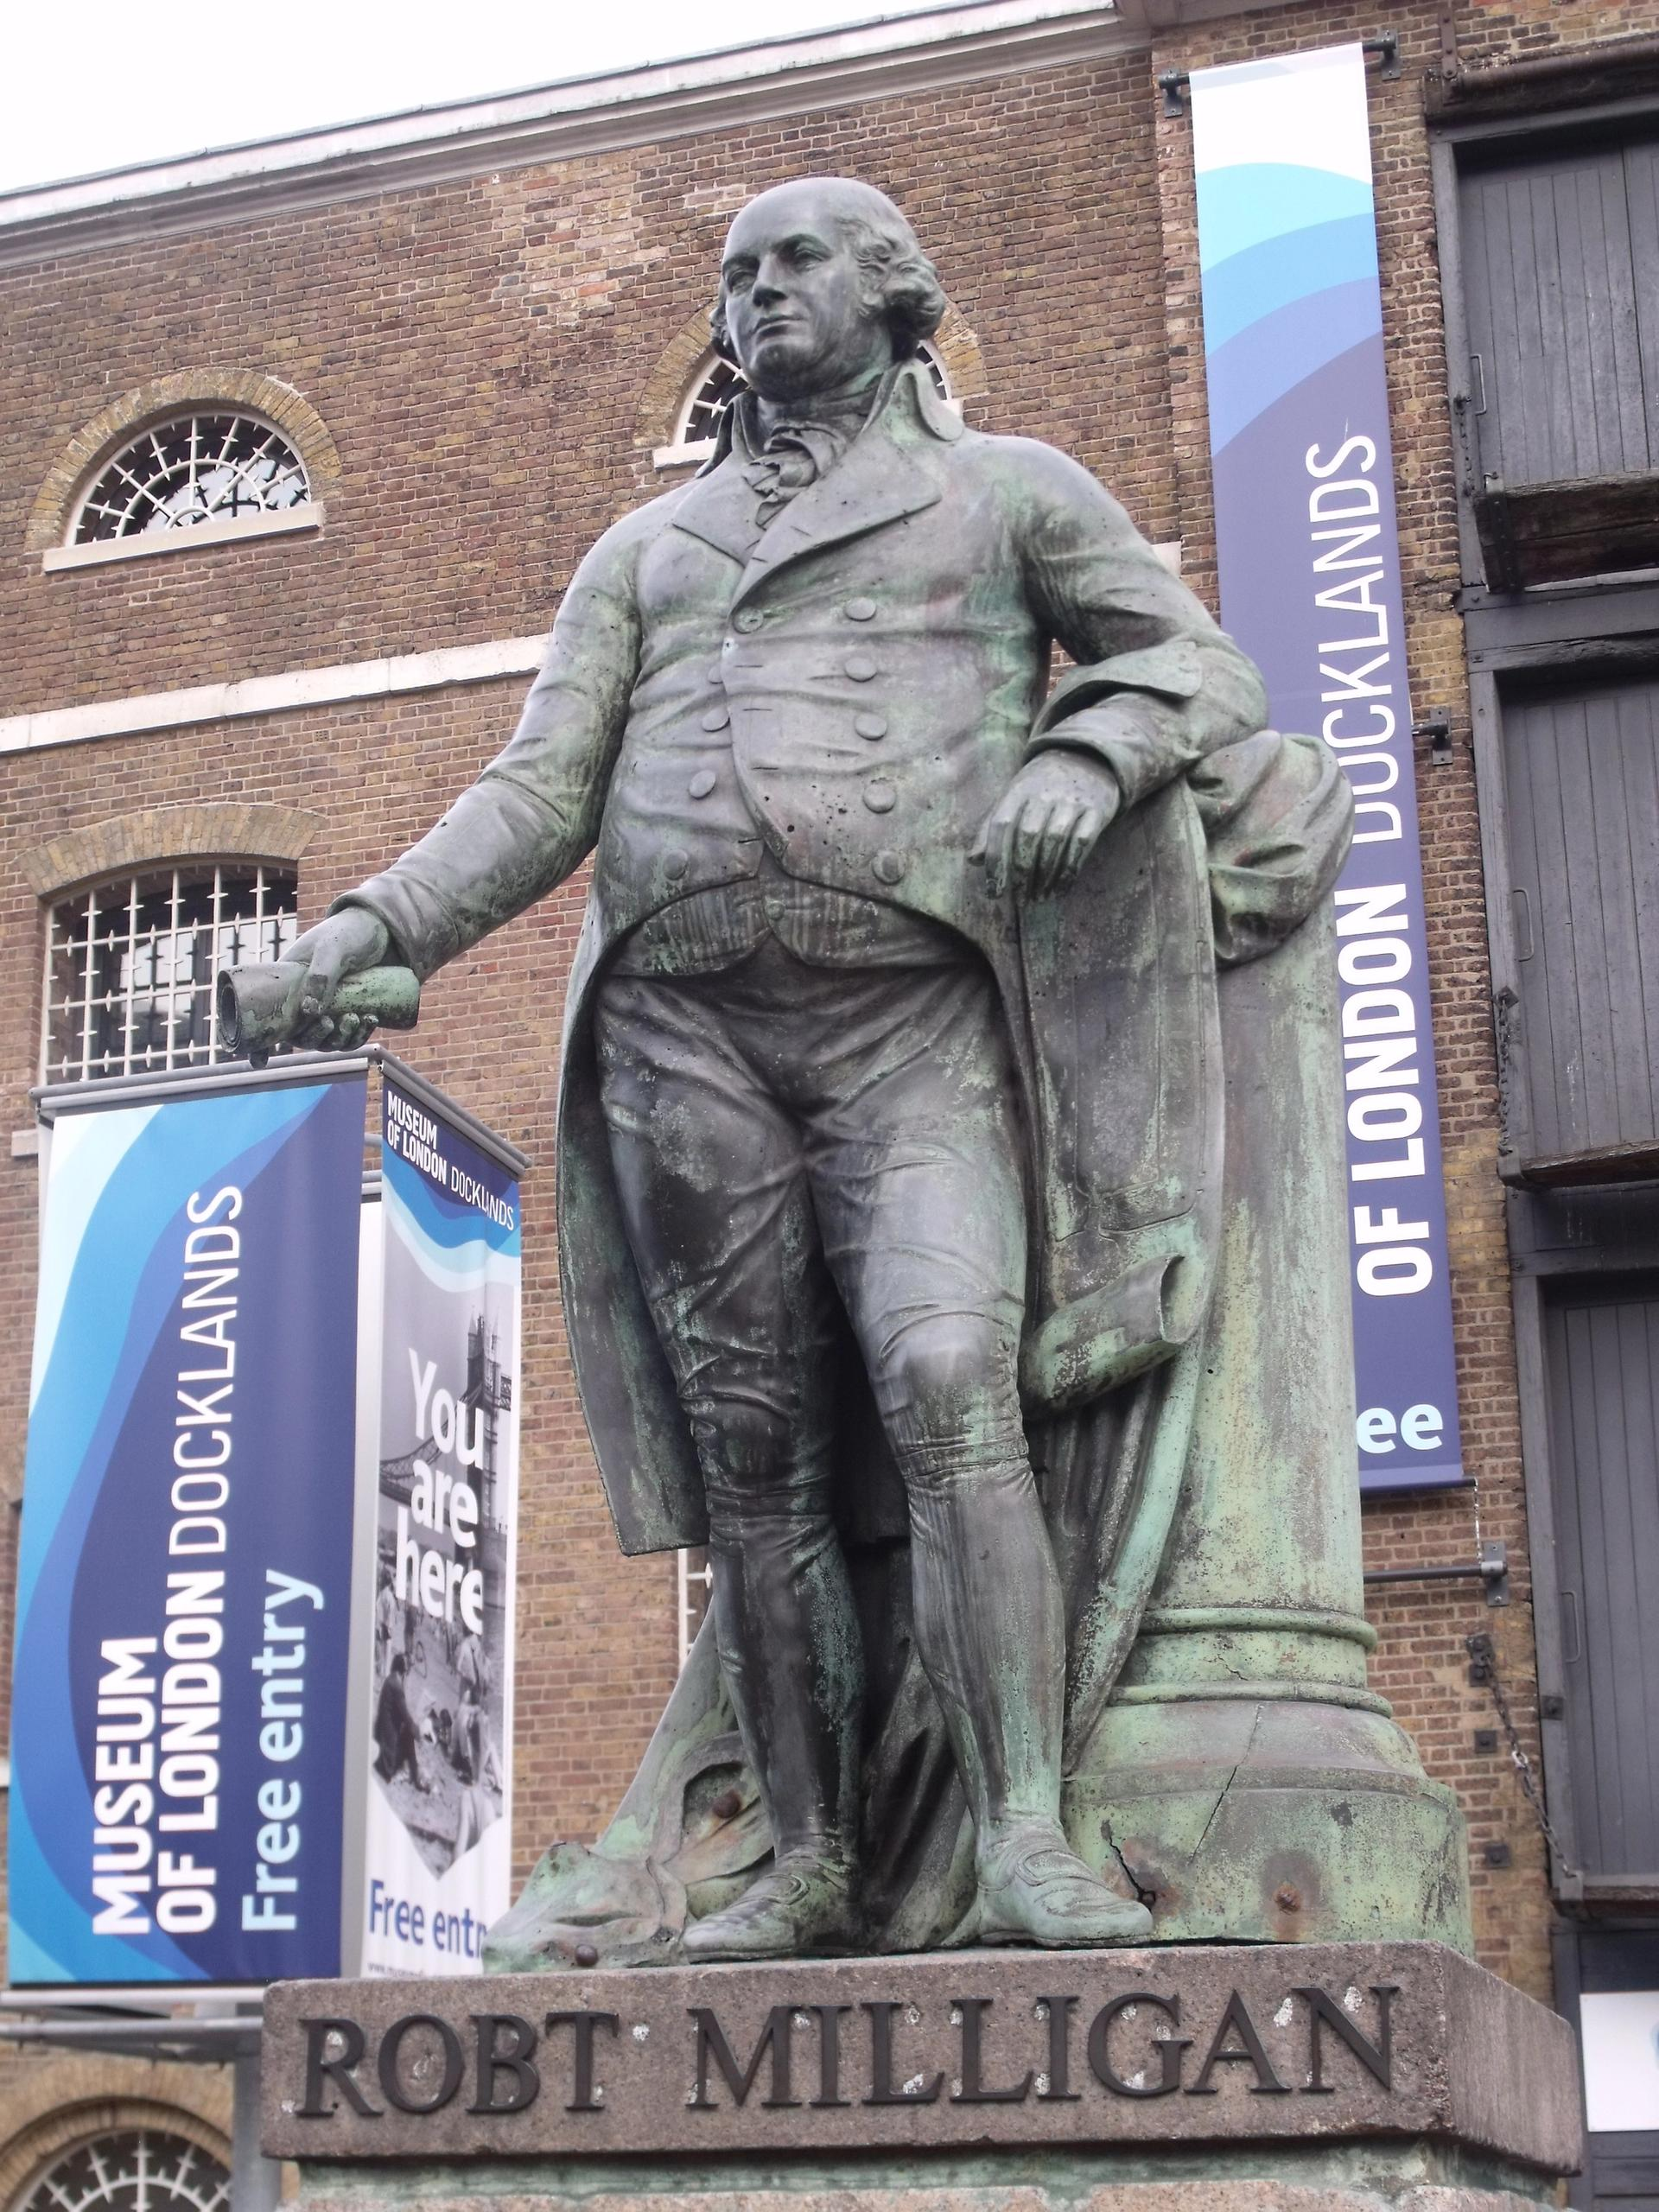 A statue of the 18th-century slave trader Robert Milligan by Richard Westmacott in east London has prompted a petition for its removal